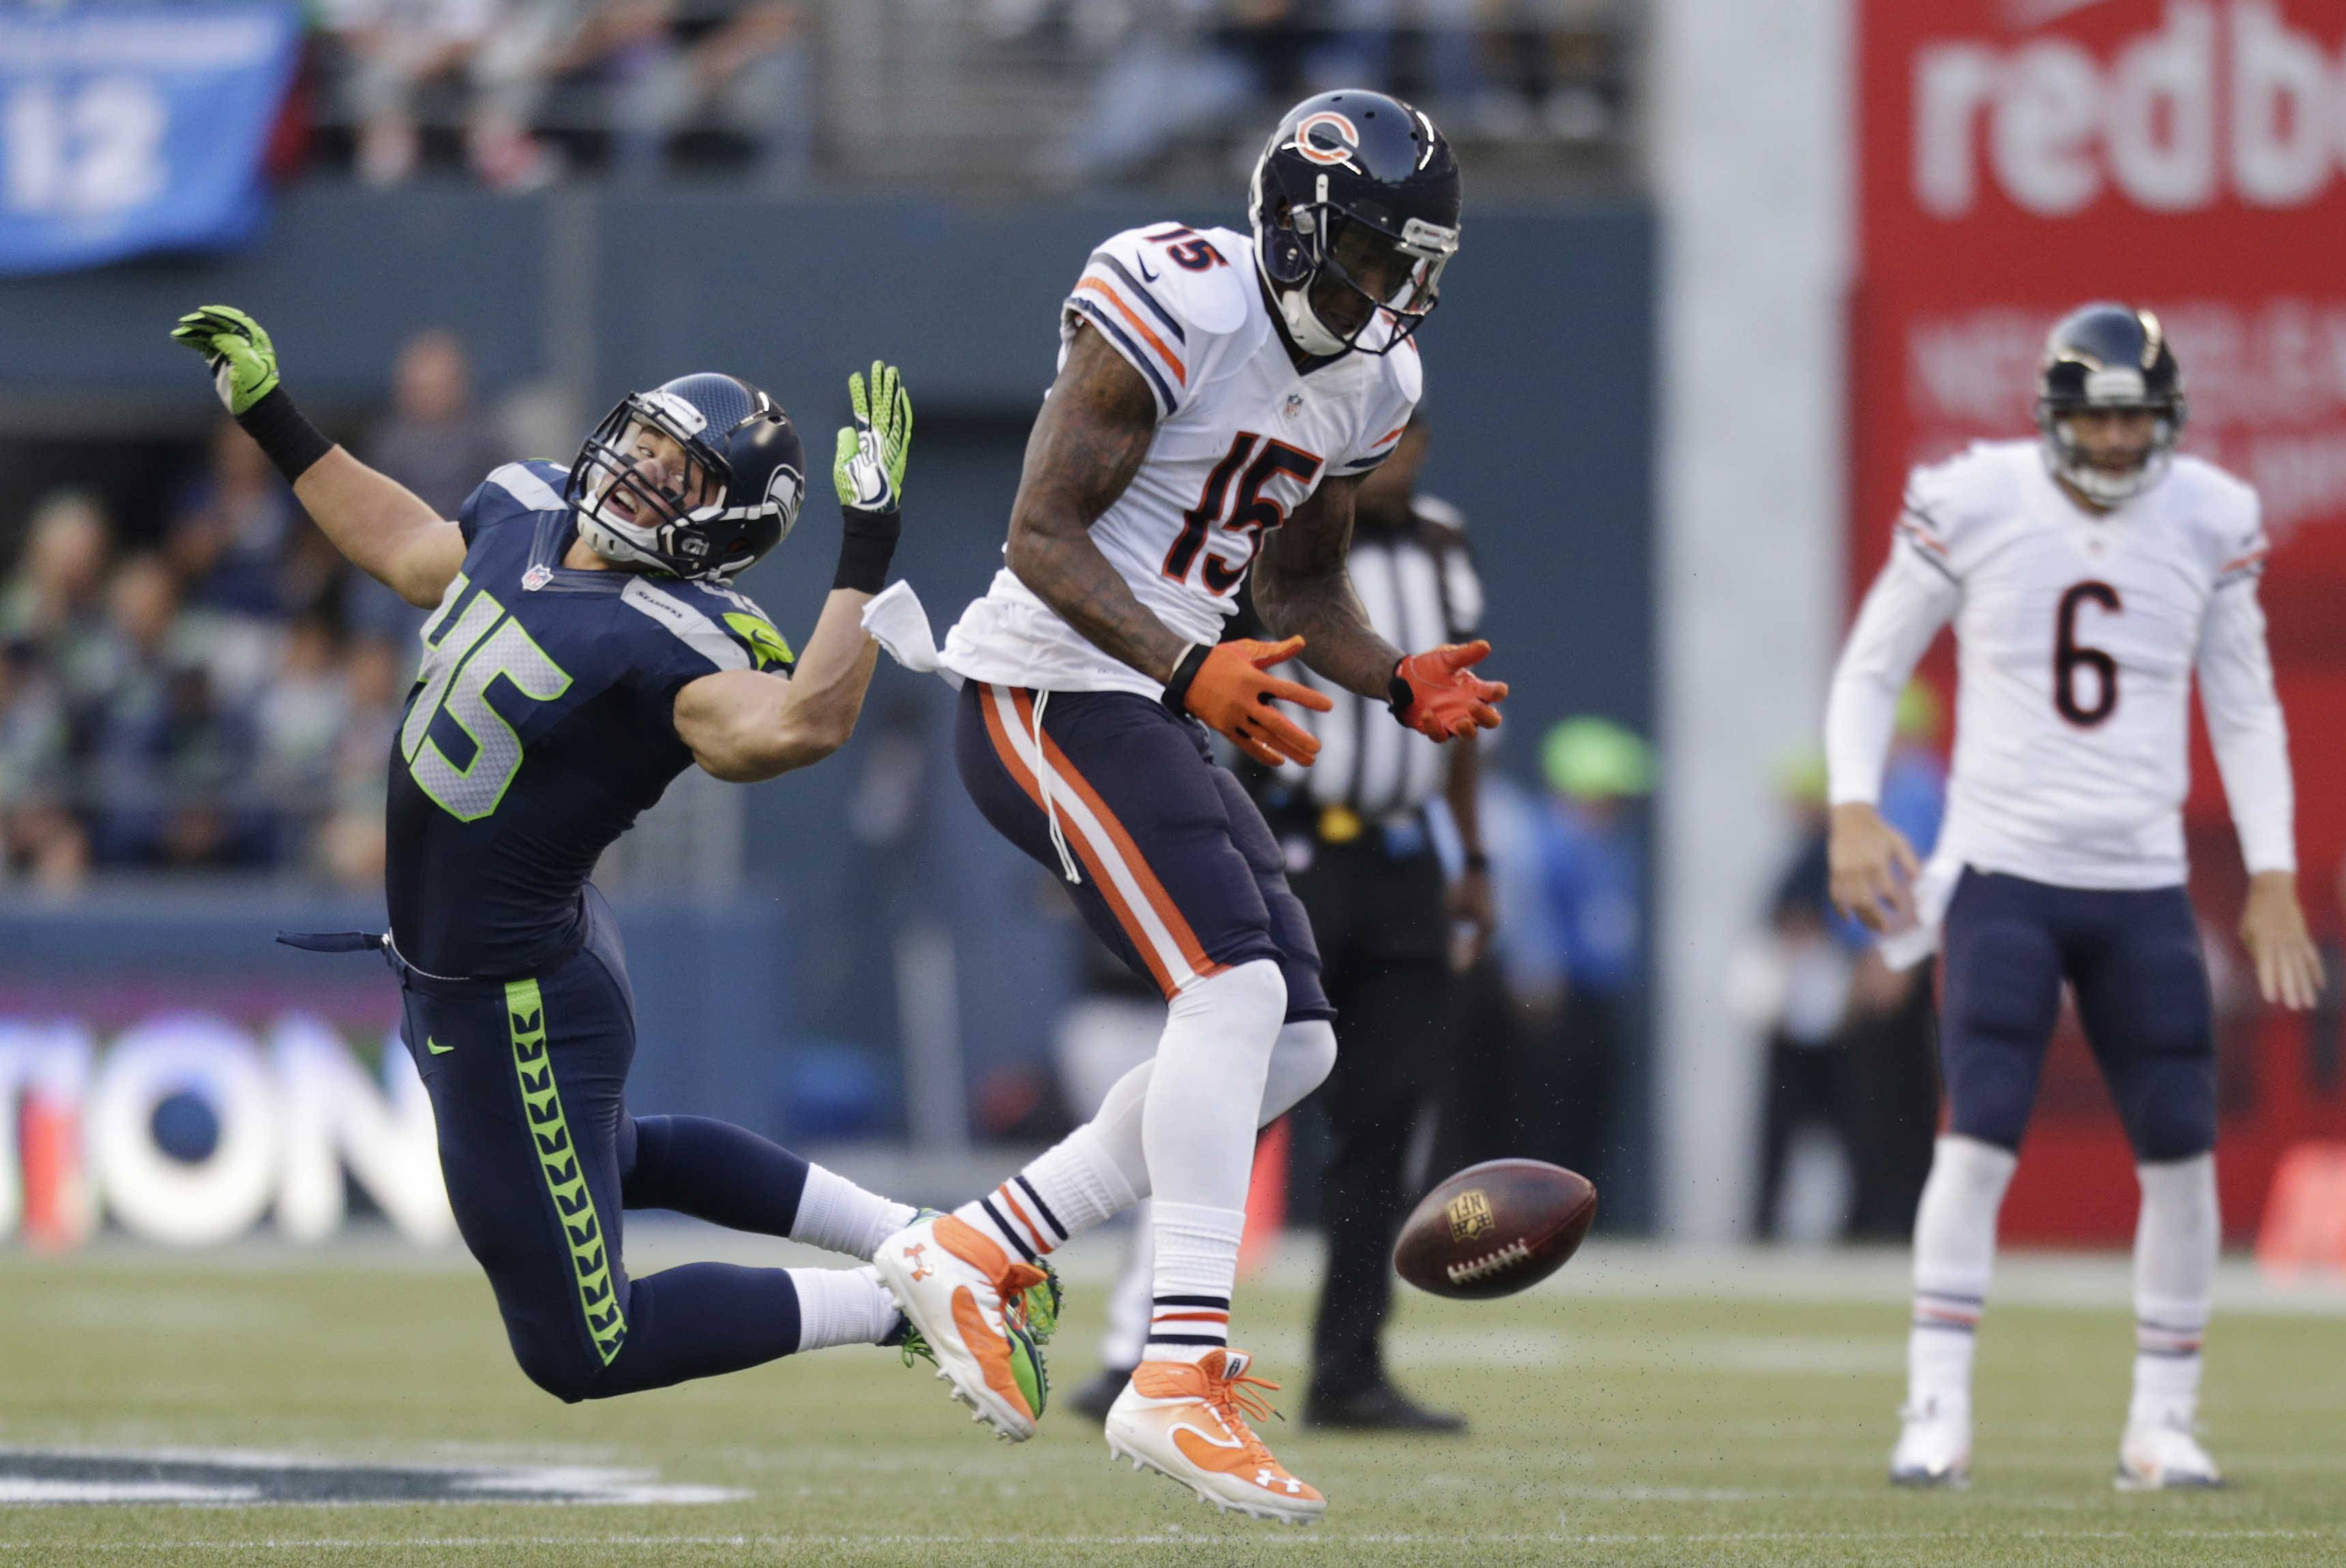 Bears receiver Brandon Marshall drops the ball as quarterback Jay Cutler watches and the Seahawks' Brock Coyle defends in the first half of Friday's preseason game in Seattle.